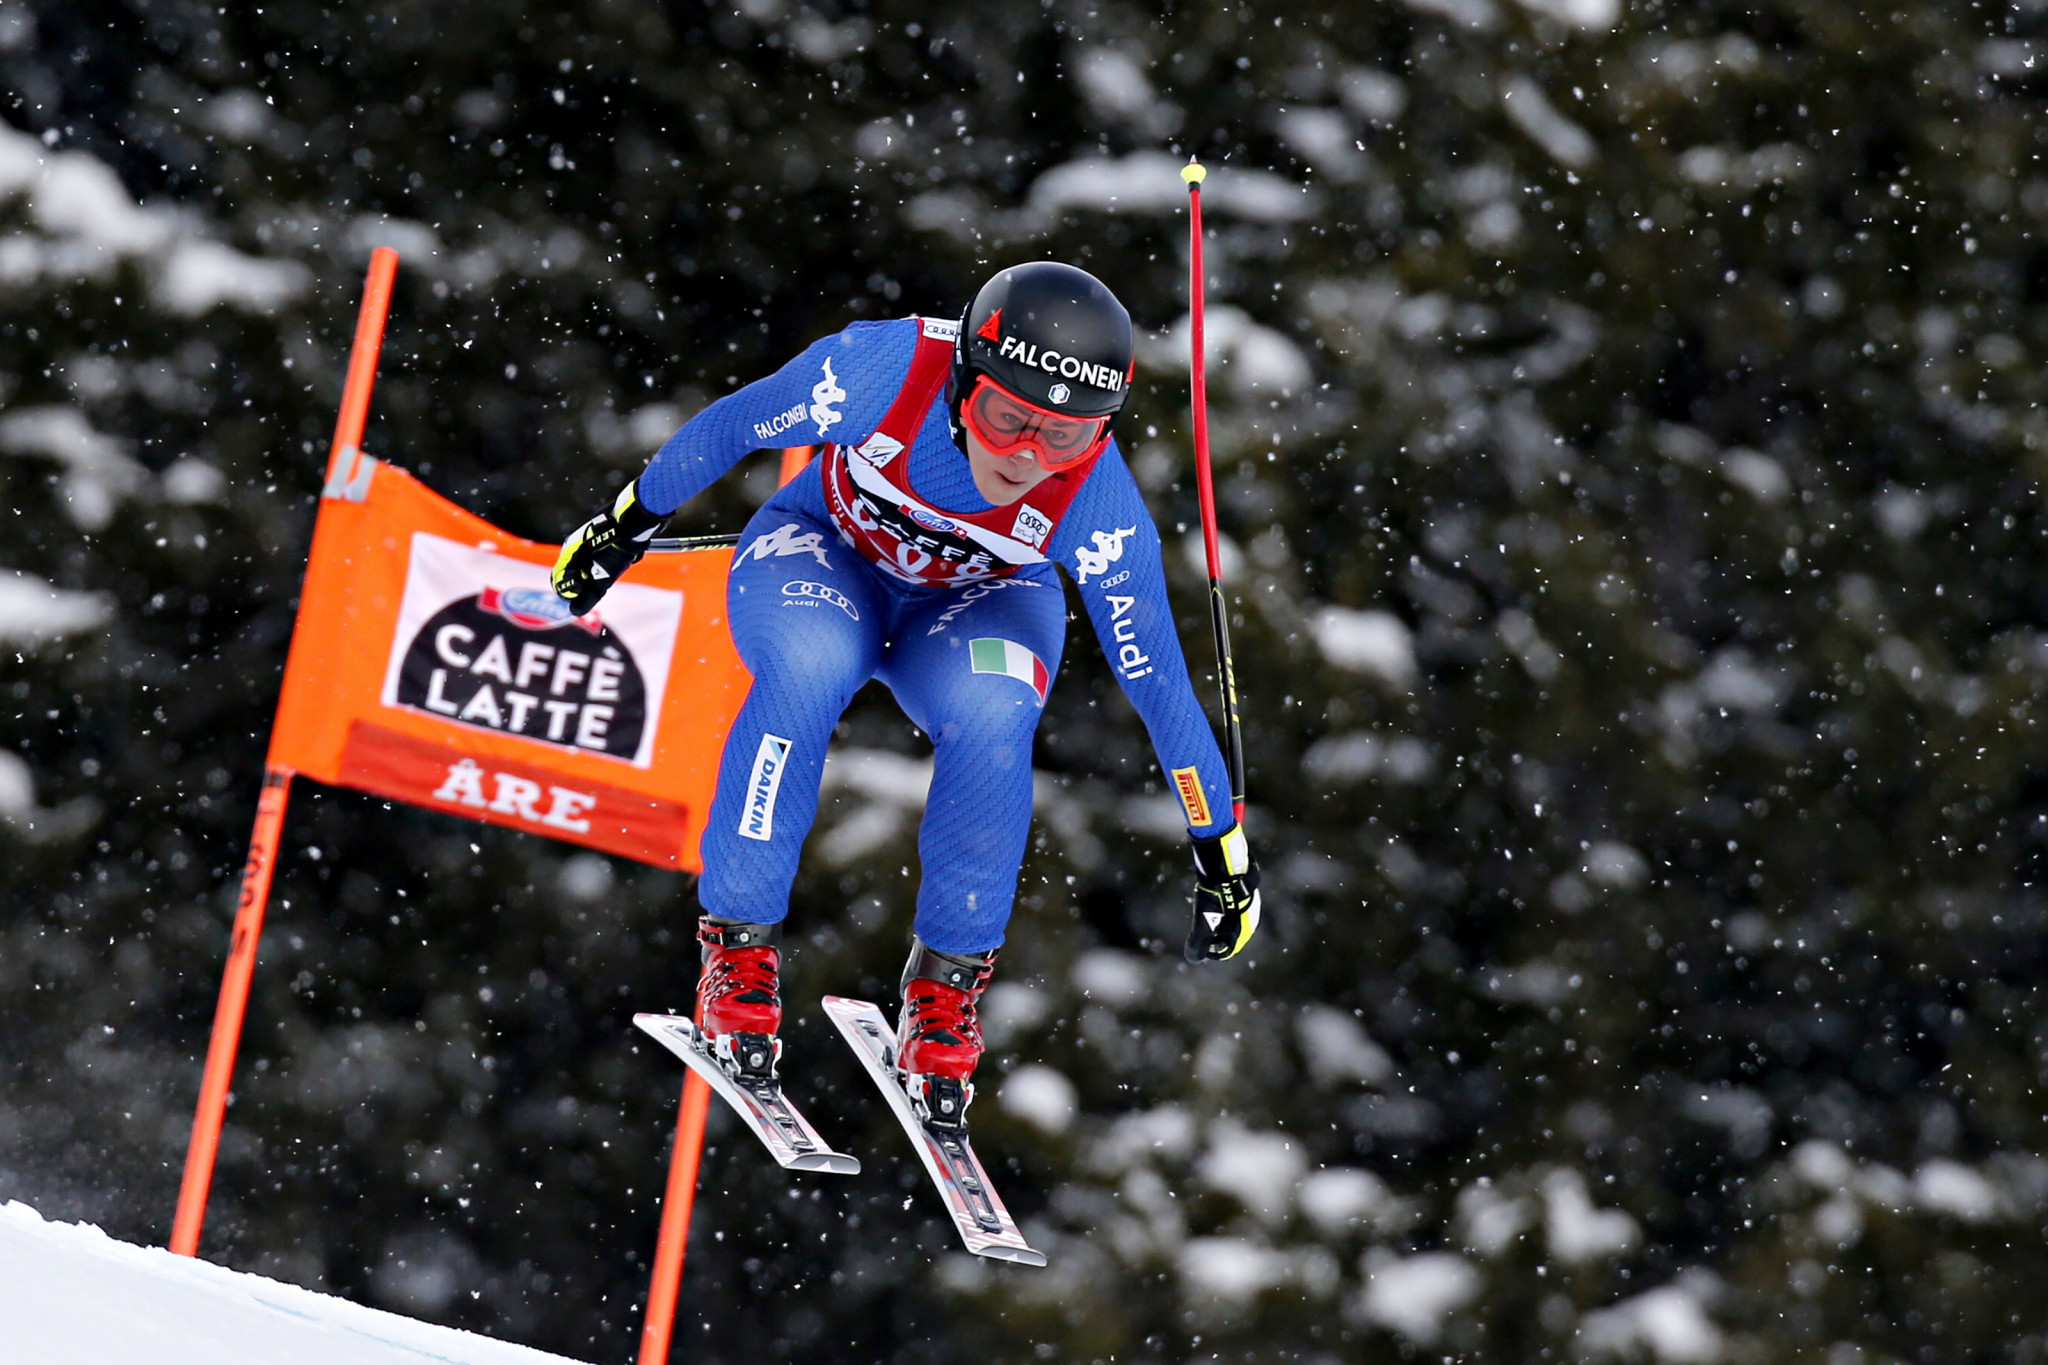 Beat Feuz claims downhill title; Austrians tie for race win